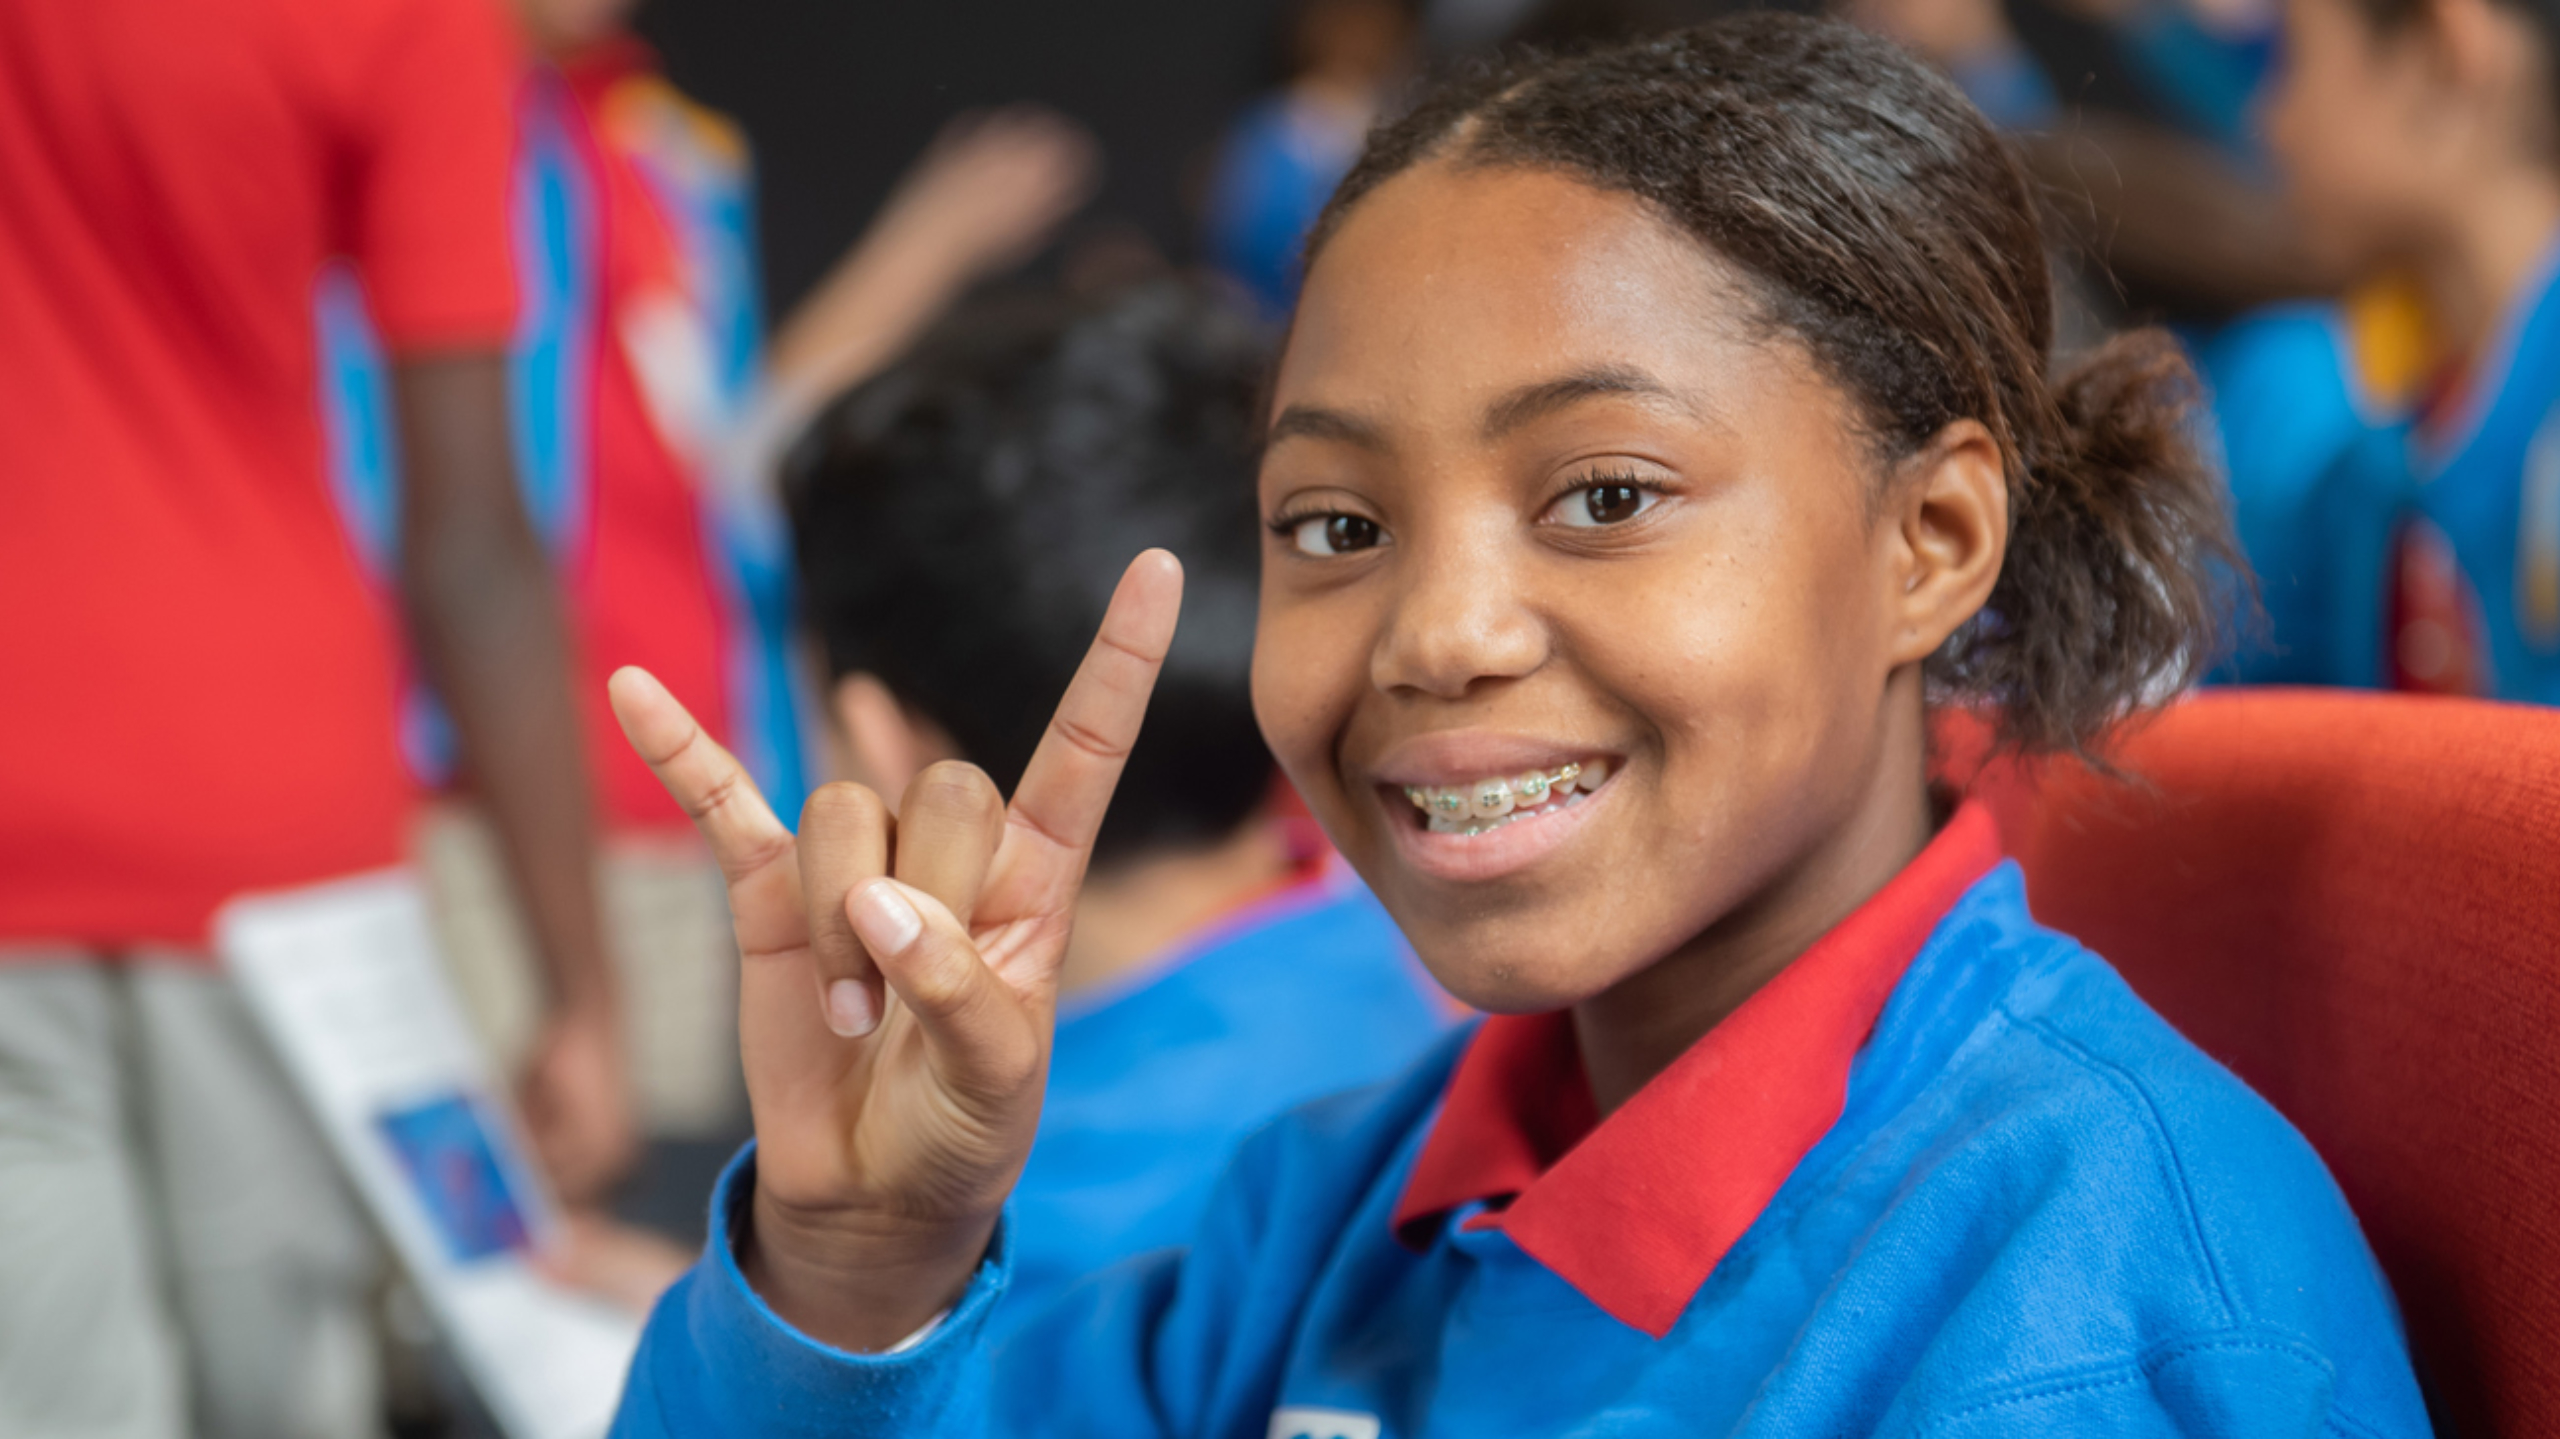 A middle school girl smiling and giving the hook 'em hand sign at the camera.